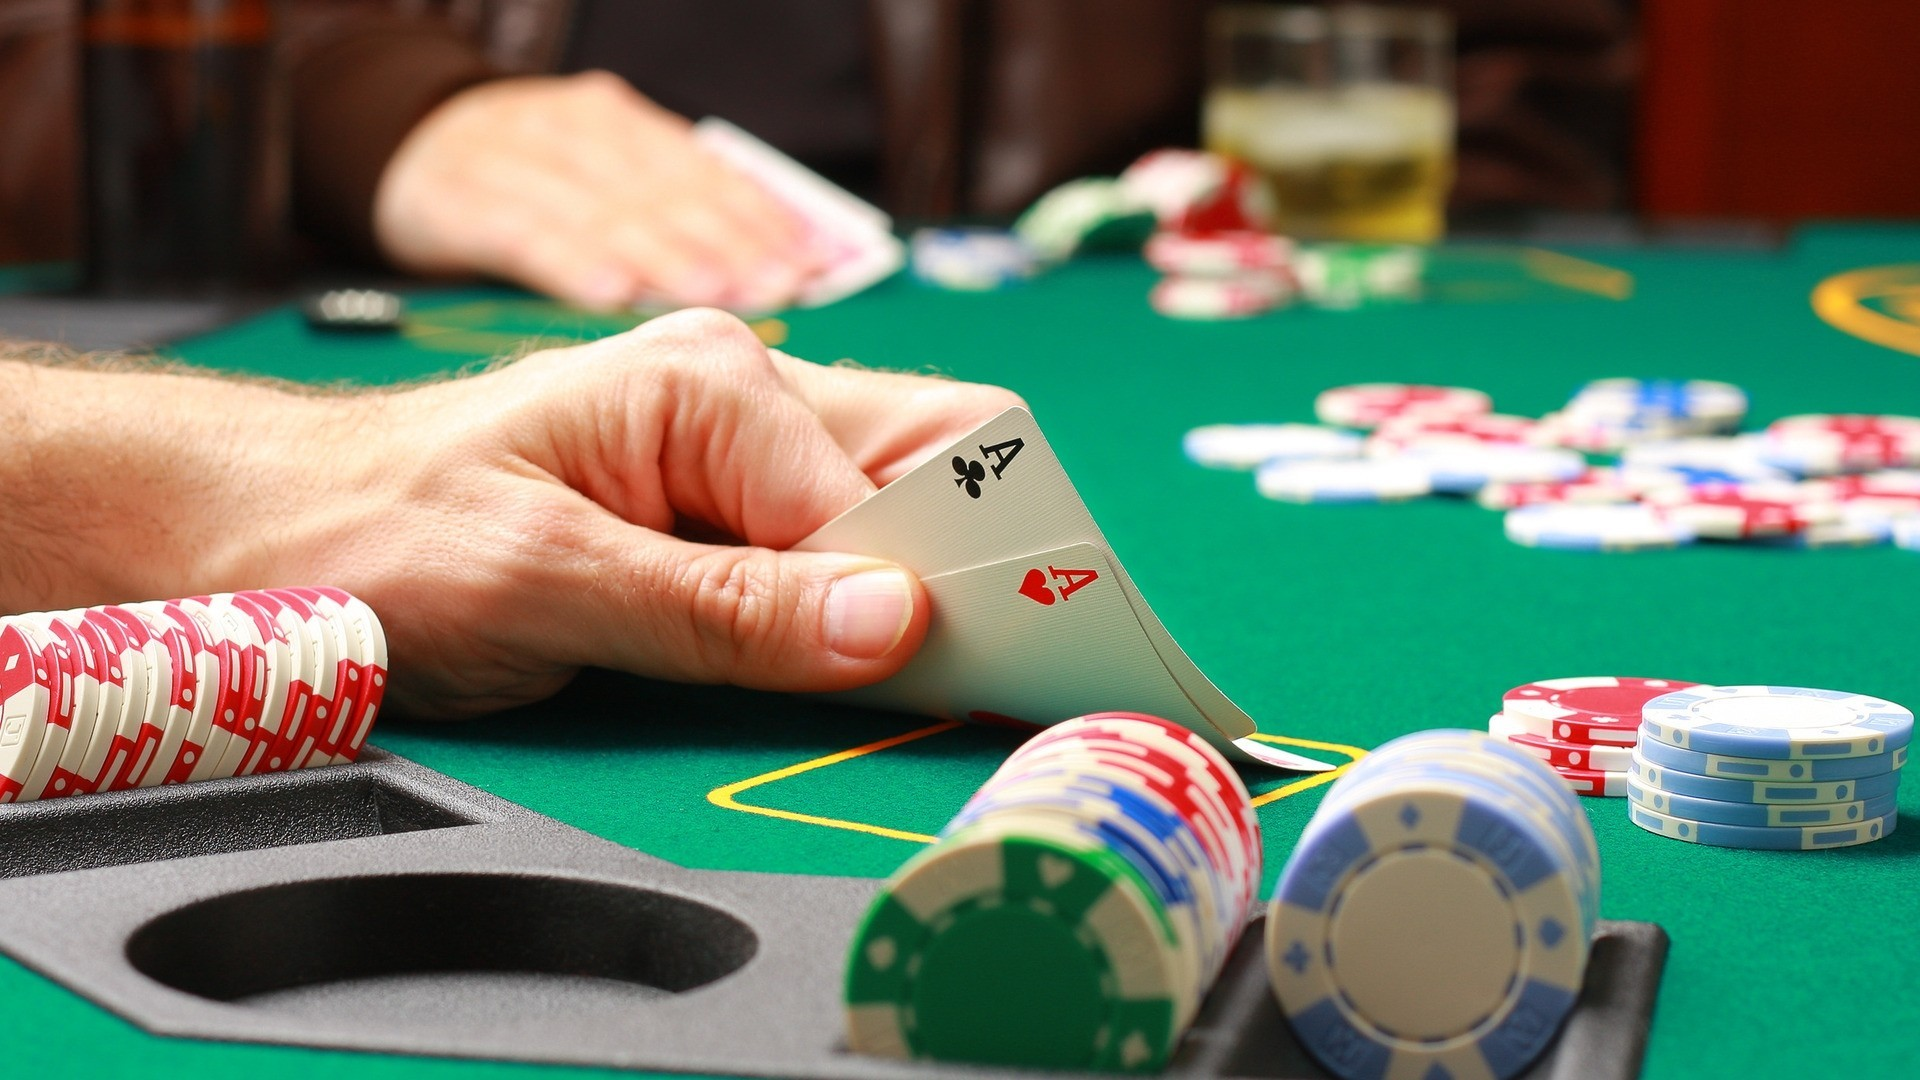 Finest 7 On-line Casinos For Actual Cash 2020 - Roulette And Slots